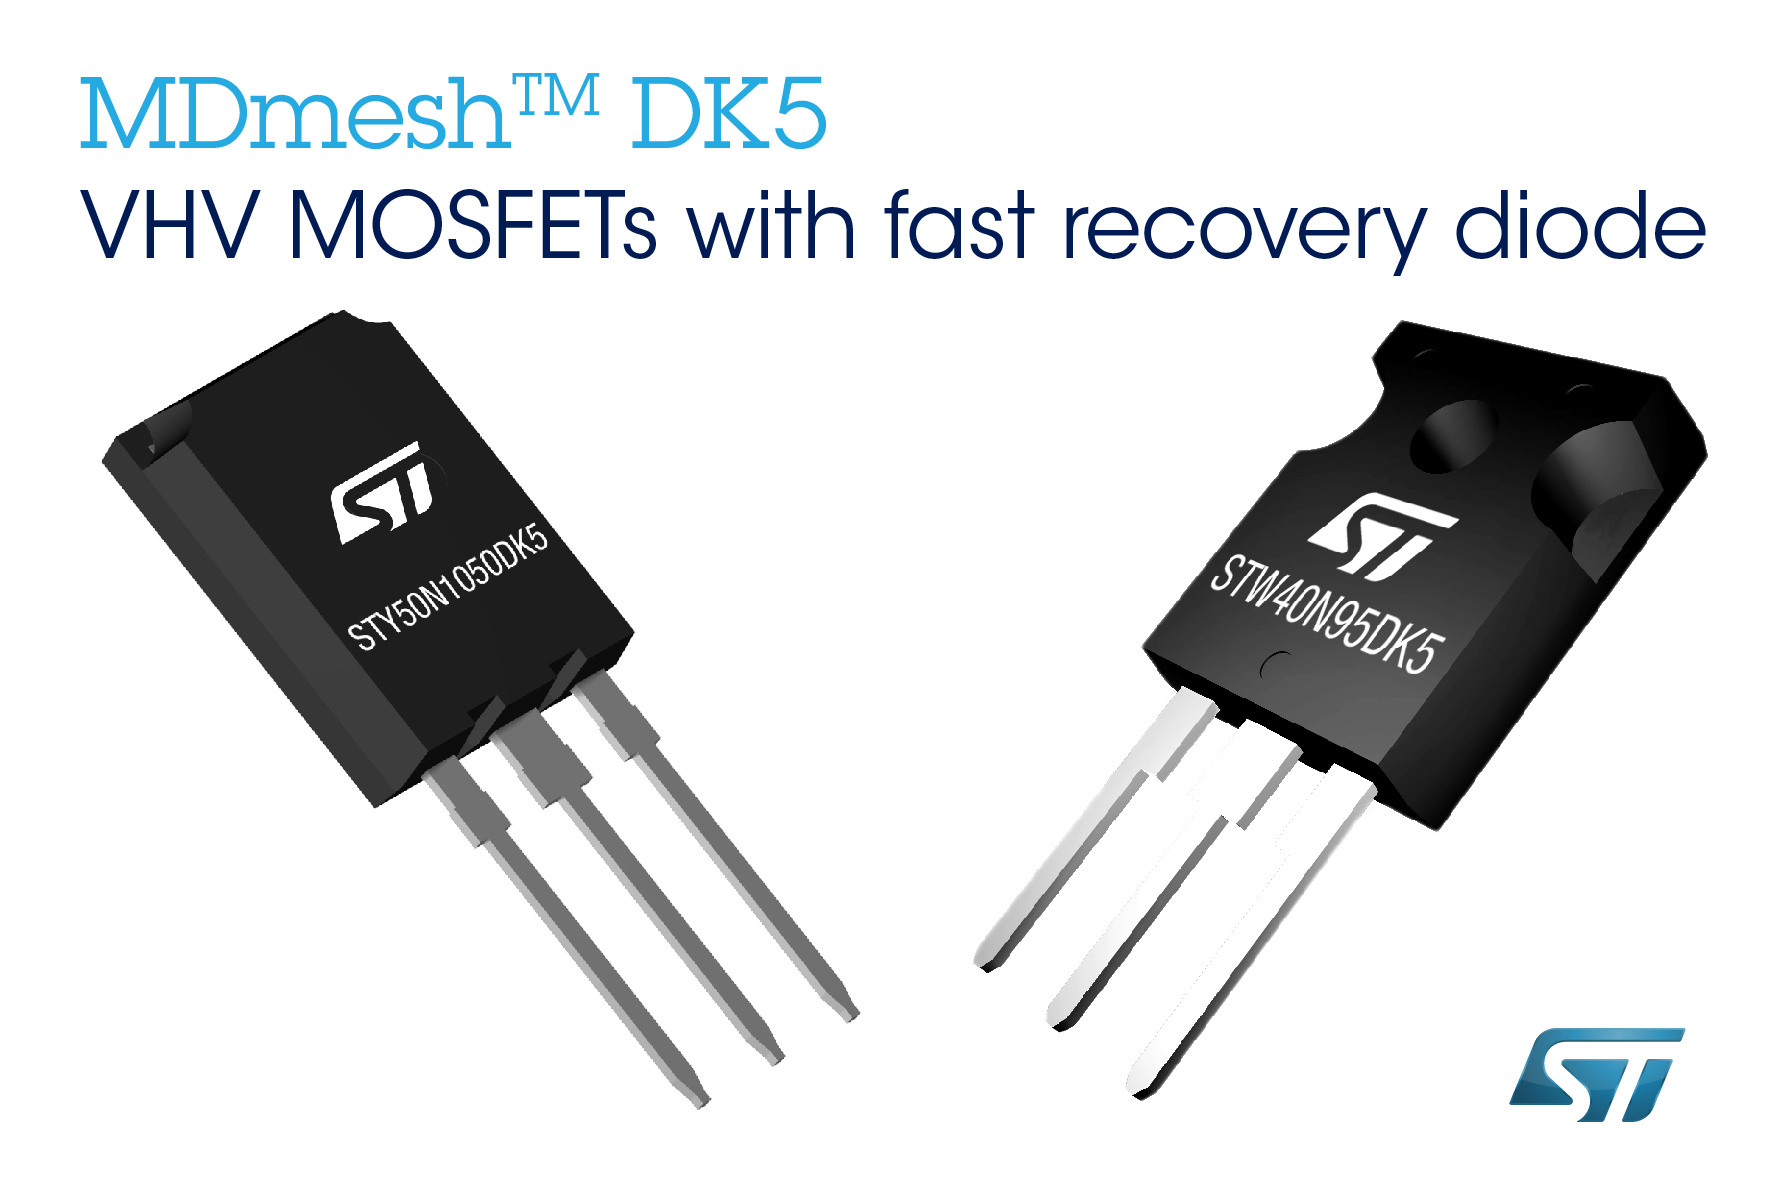 STMicroelectronics' New MDmesh™ MOSFETs with Fast-Recovery Diode